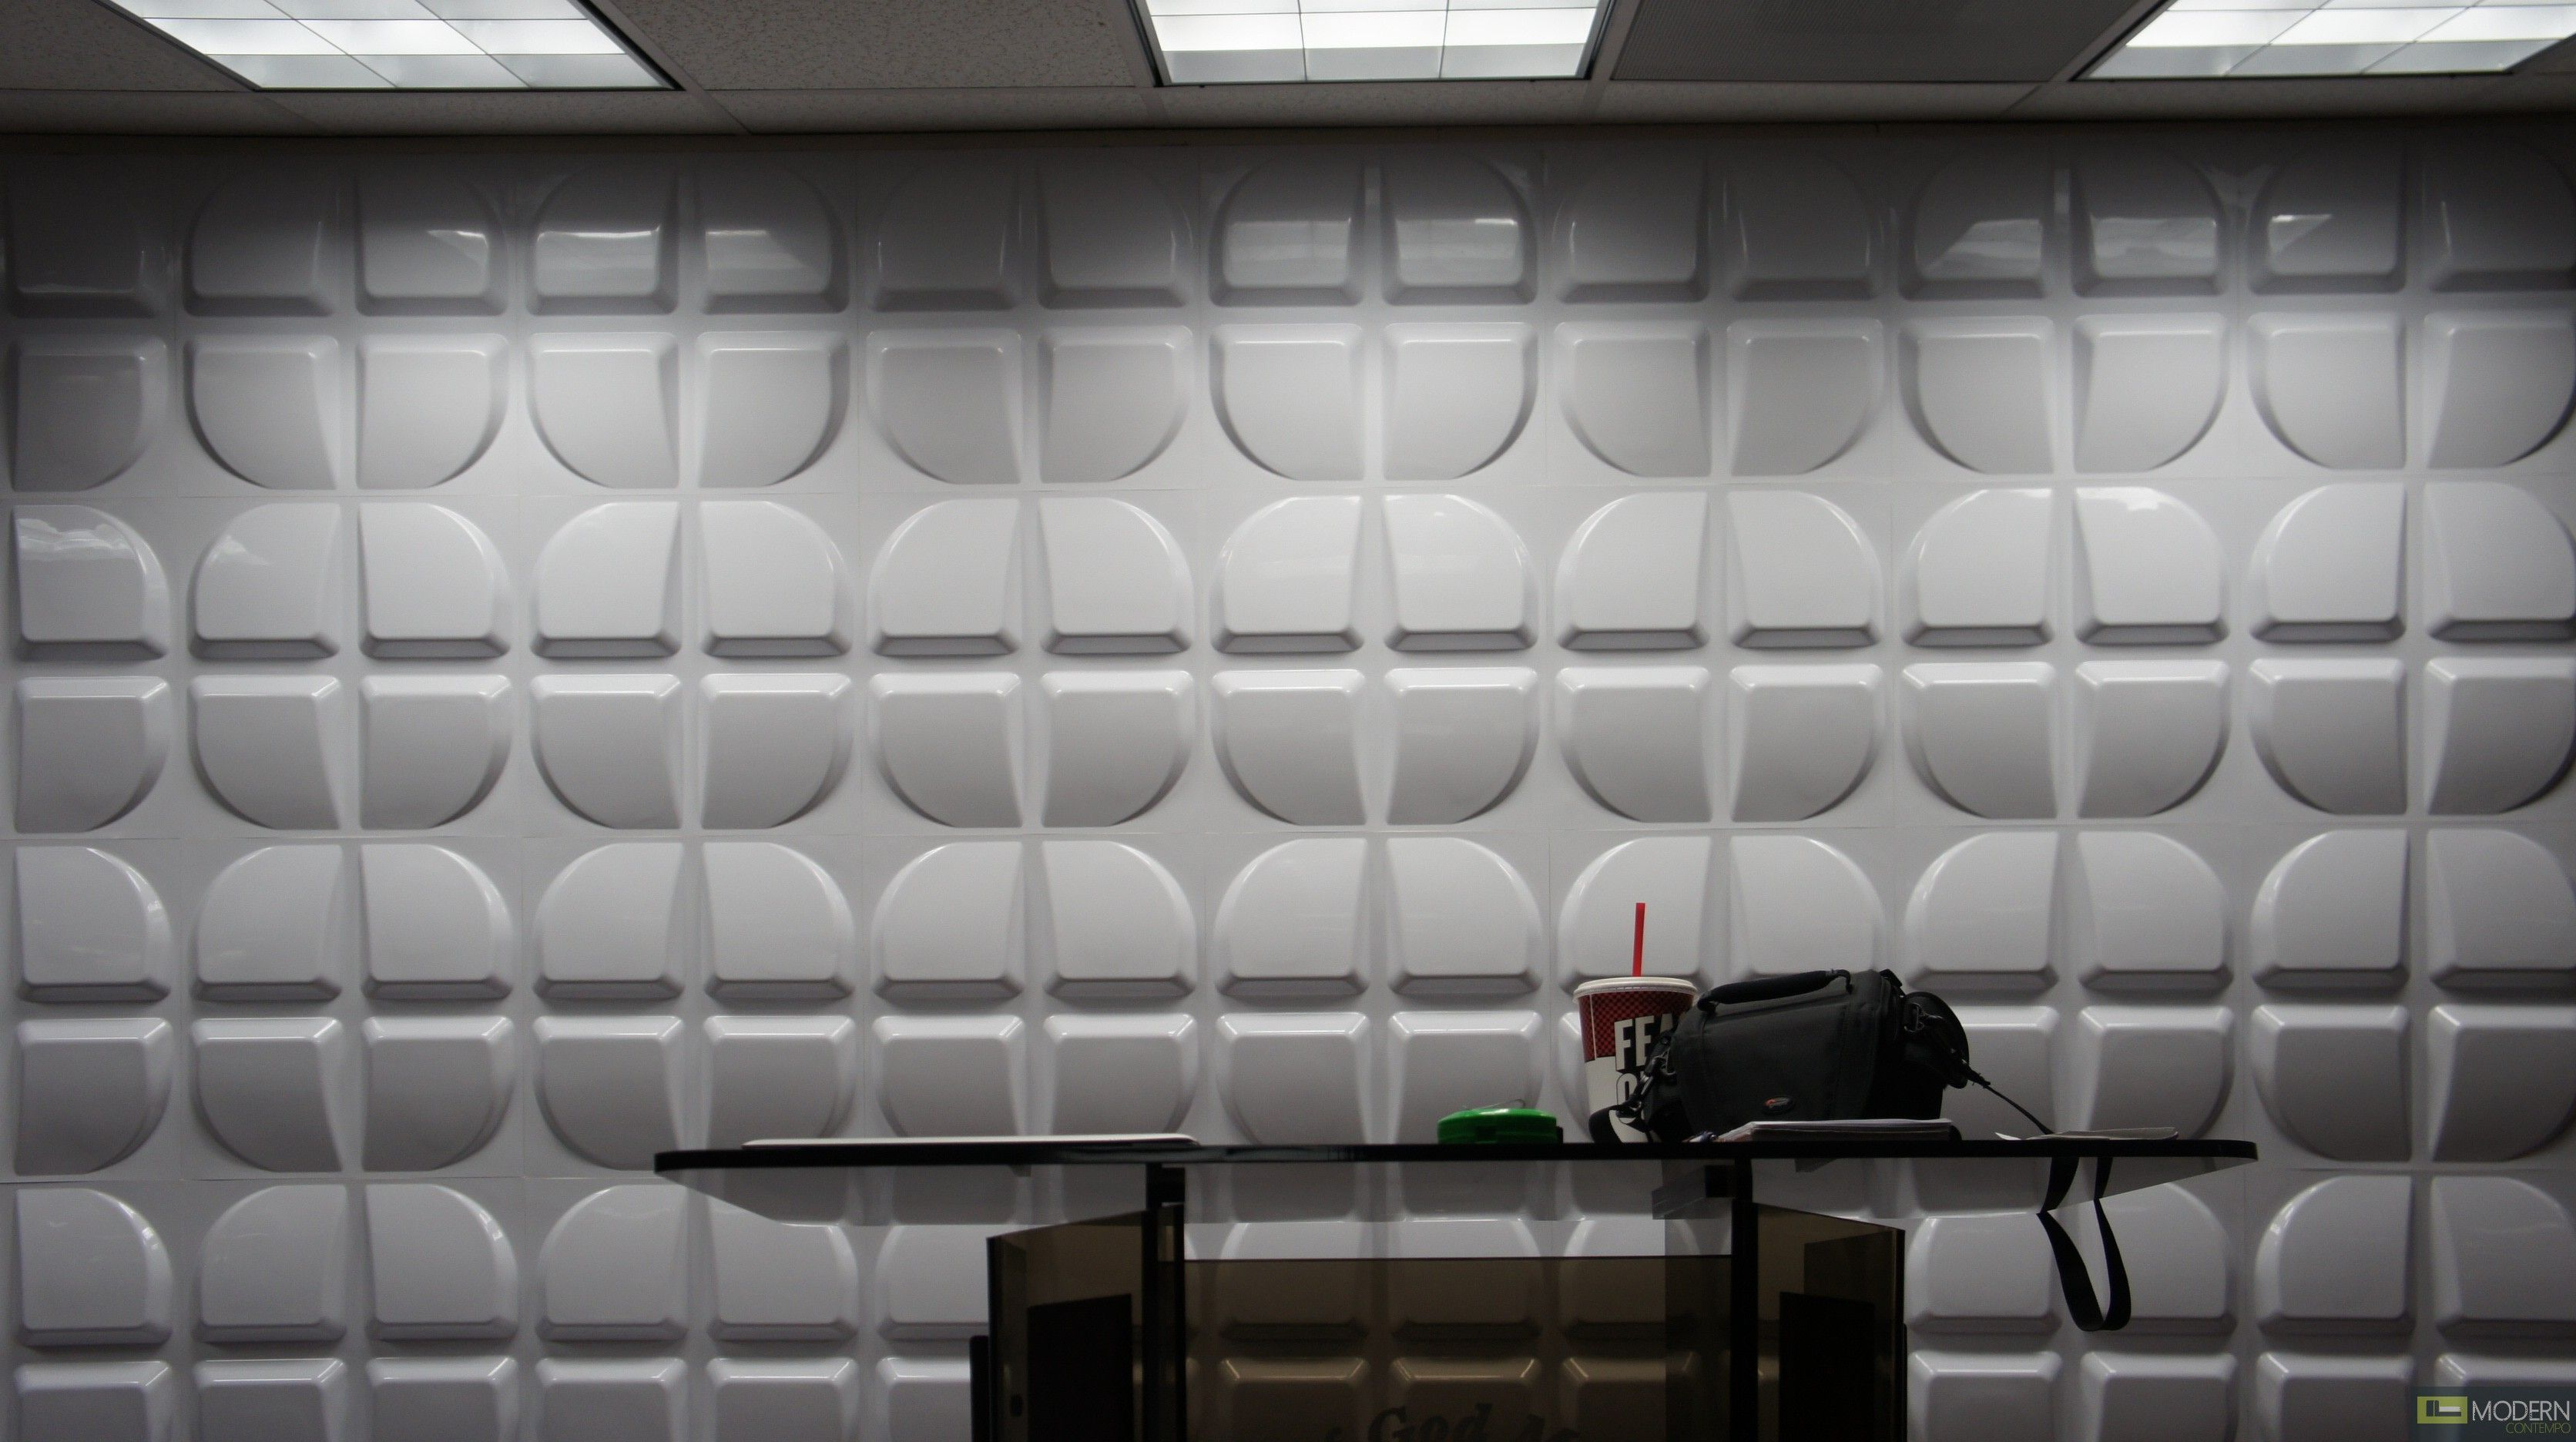 3d Wall Panels Need Pvc Panels For Moisture In Bathroom Wall Design 3d Wall Panels Wainscoting Panels